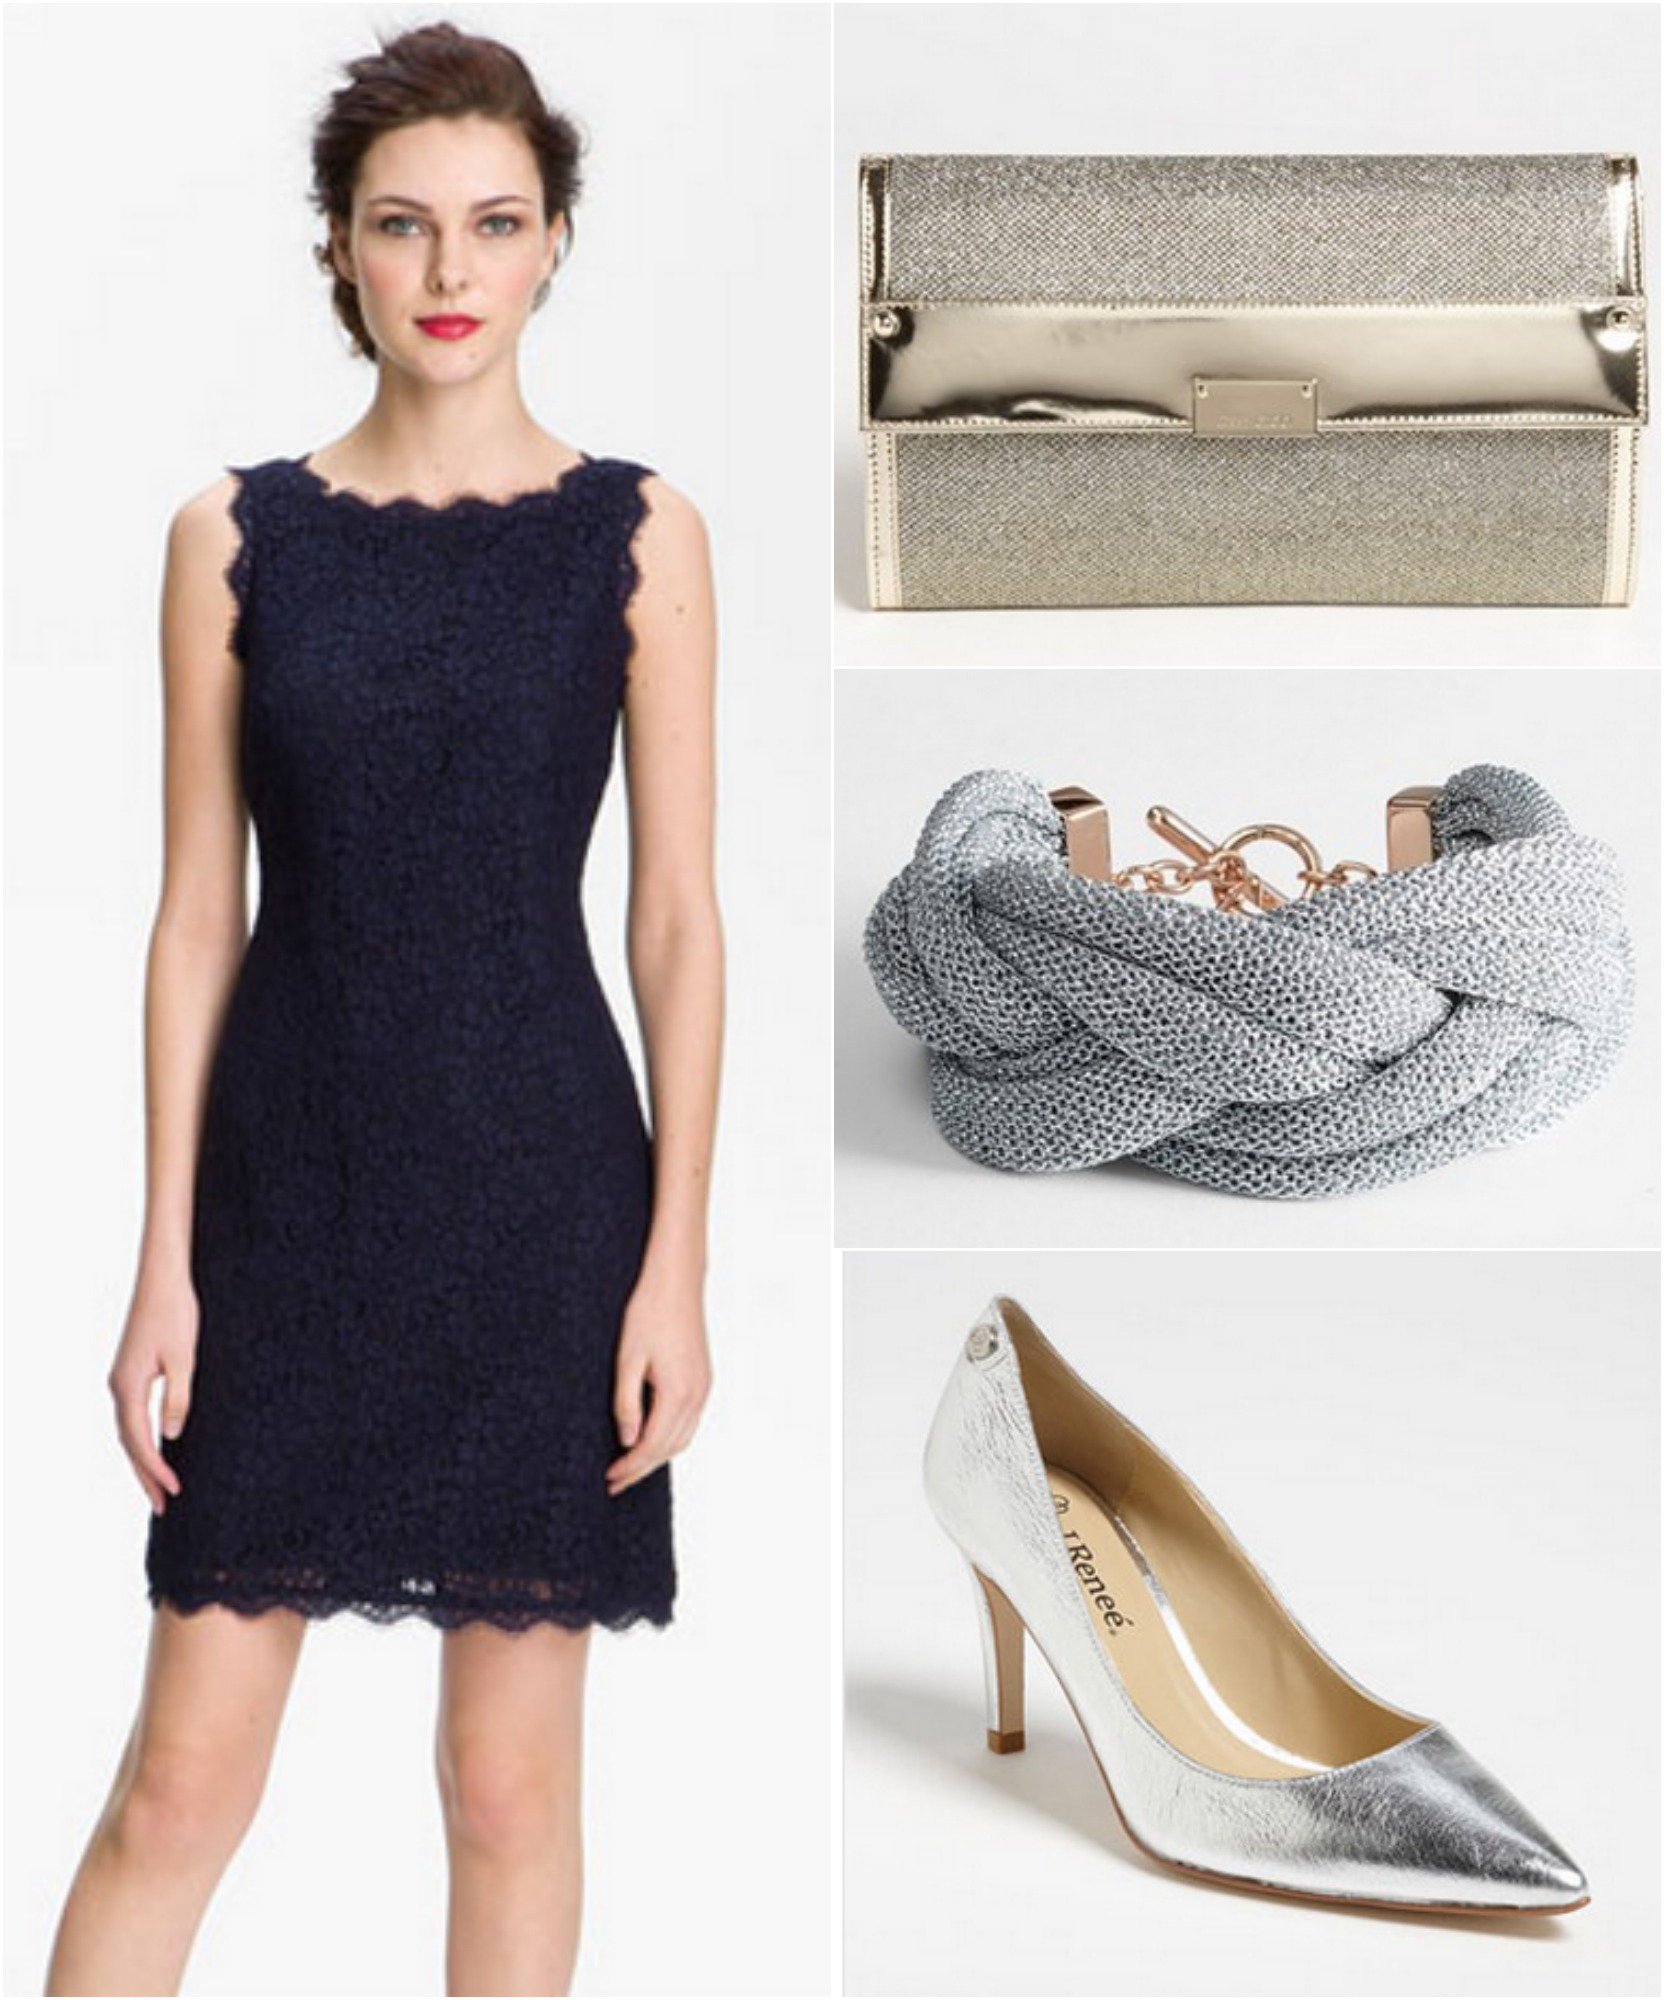 4 ways to wear a bridesmaid dress rustic wedding chic for What colour shoes with navy dress for wedding